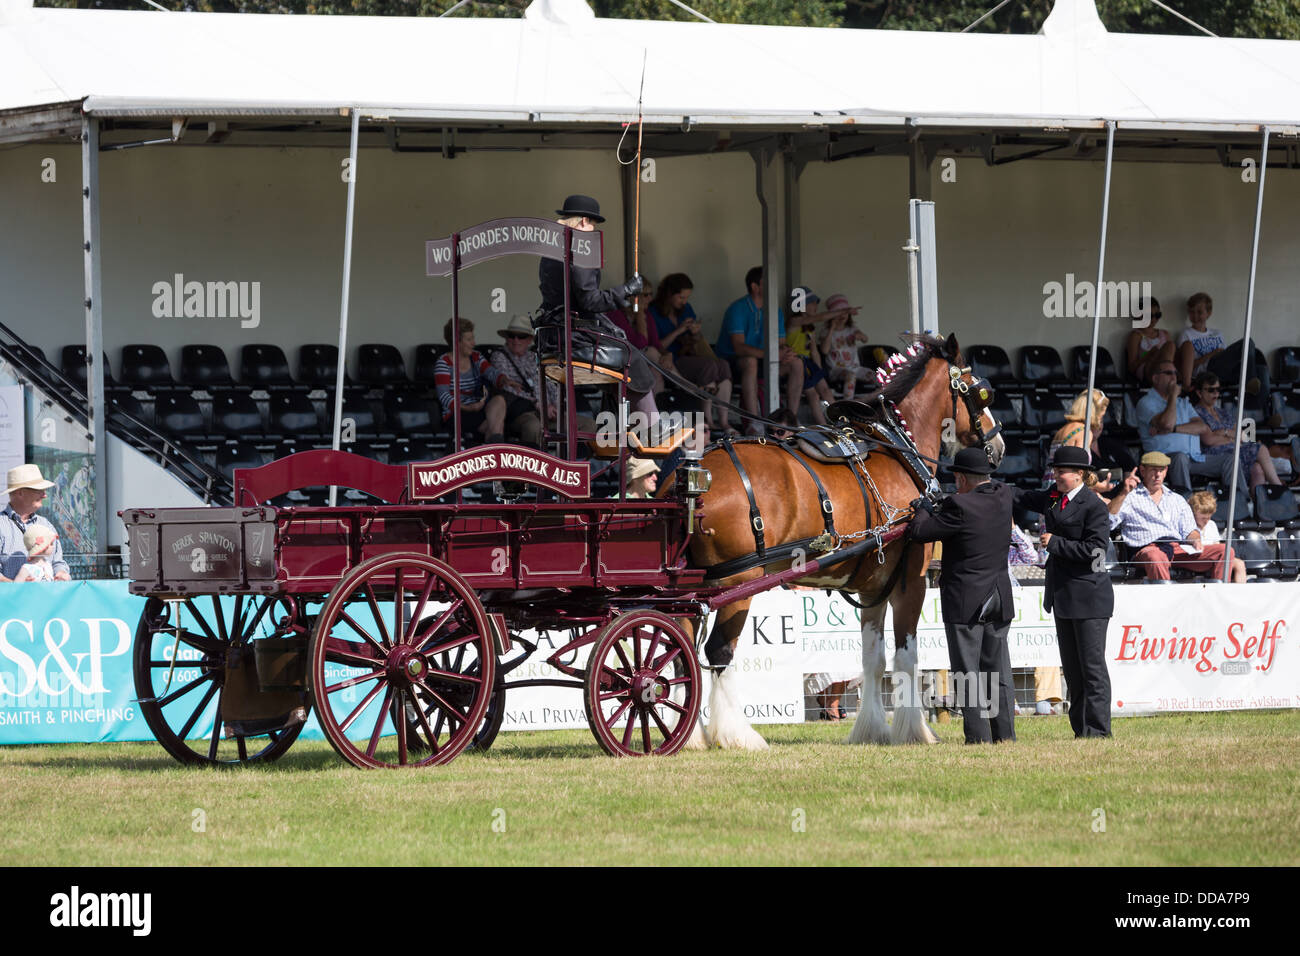 A traditional ale cart and shire horse are judged at a county show in England Stock Photo